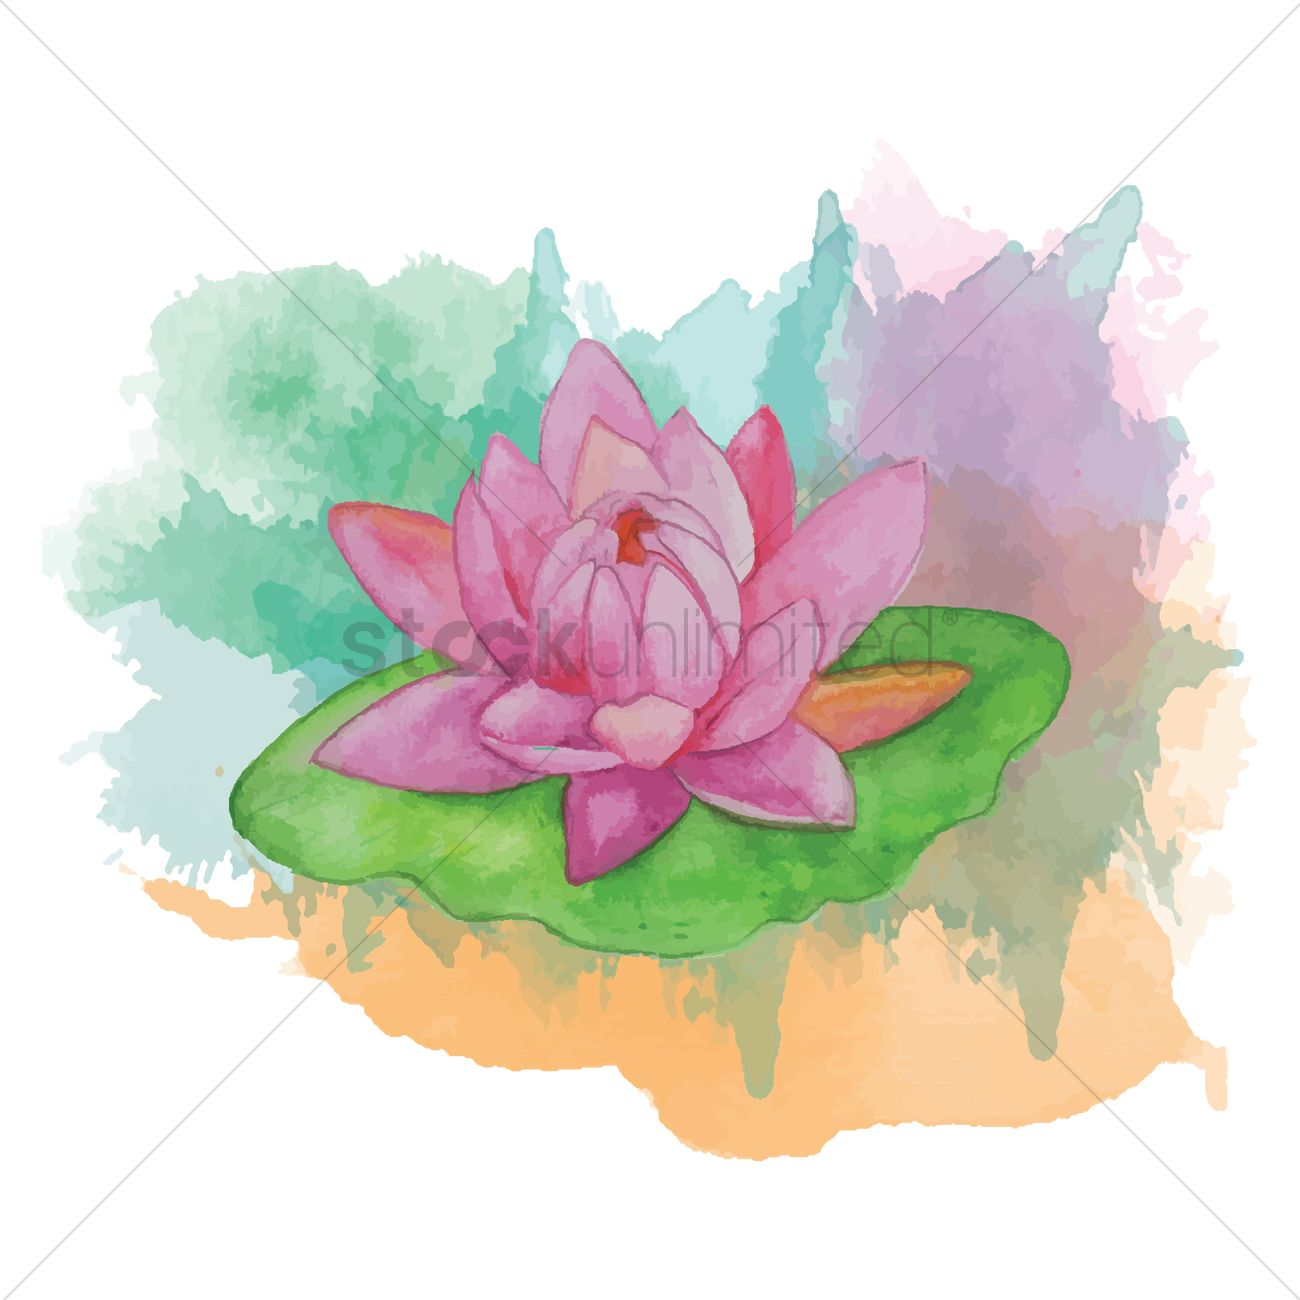 Lotus Flower With Leaf Vector Image 1869387 Stockunlimited